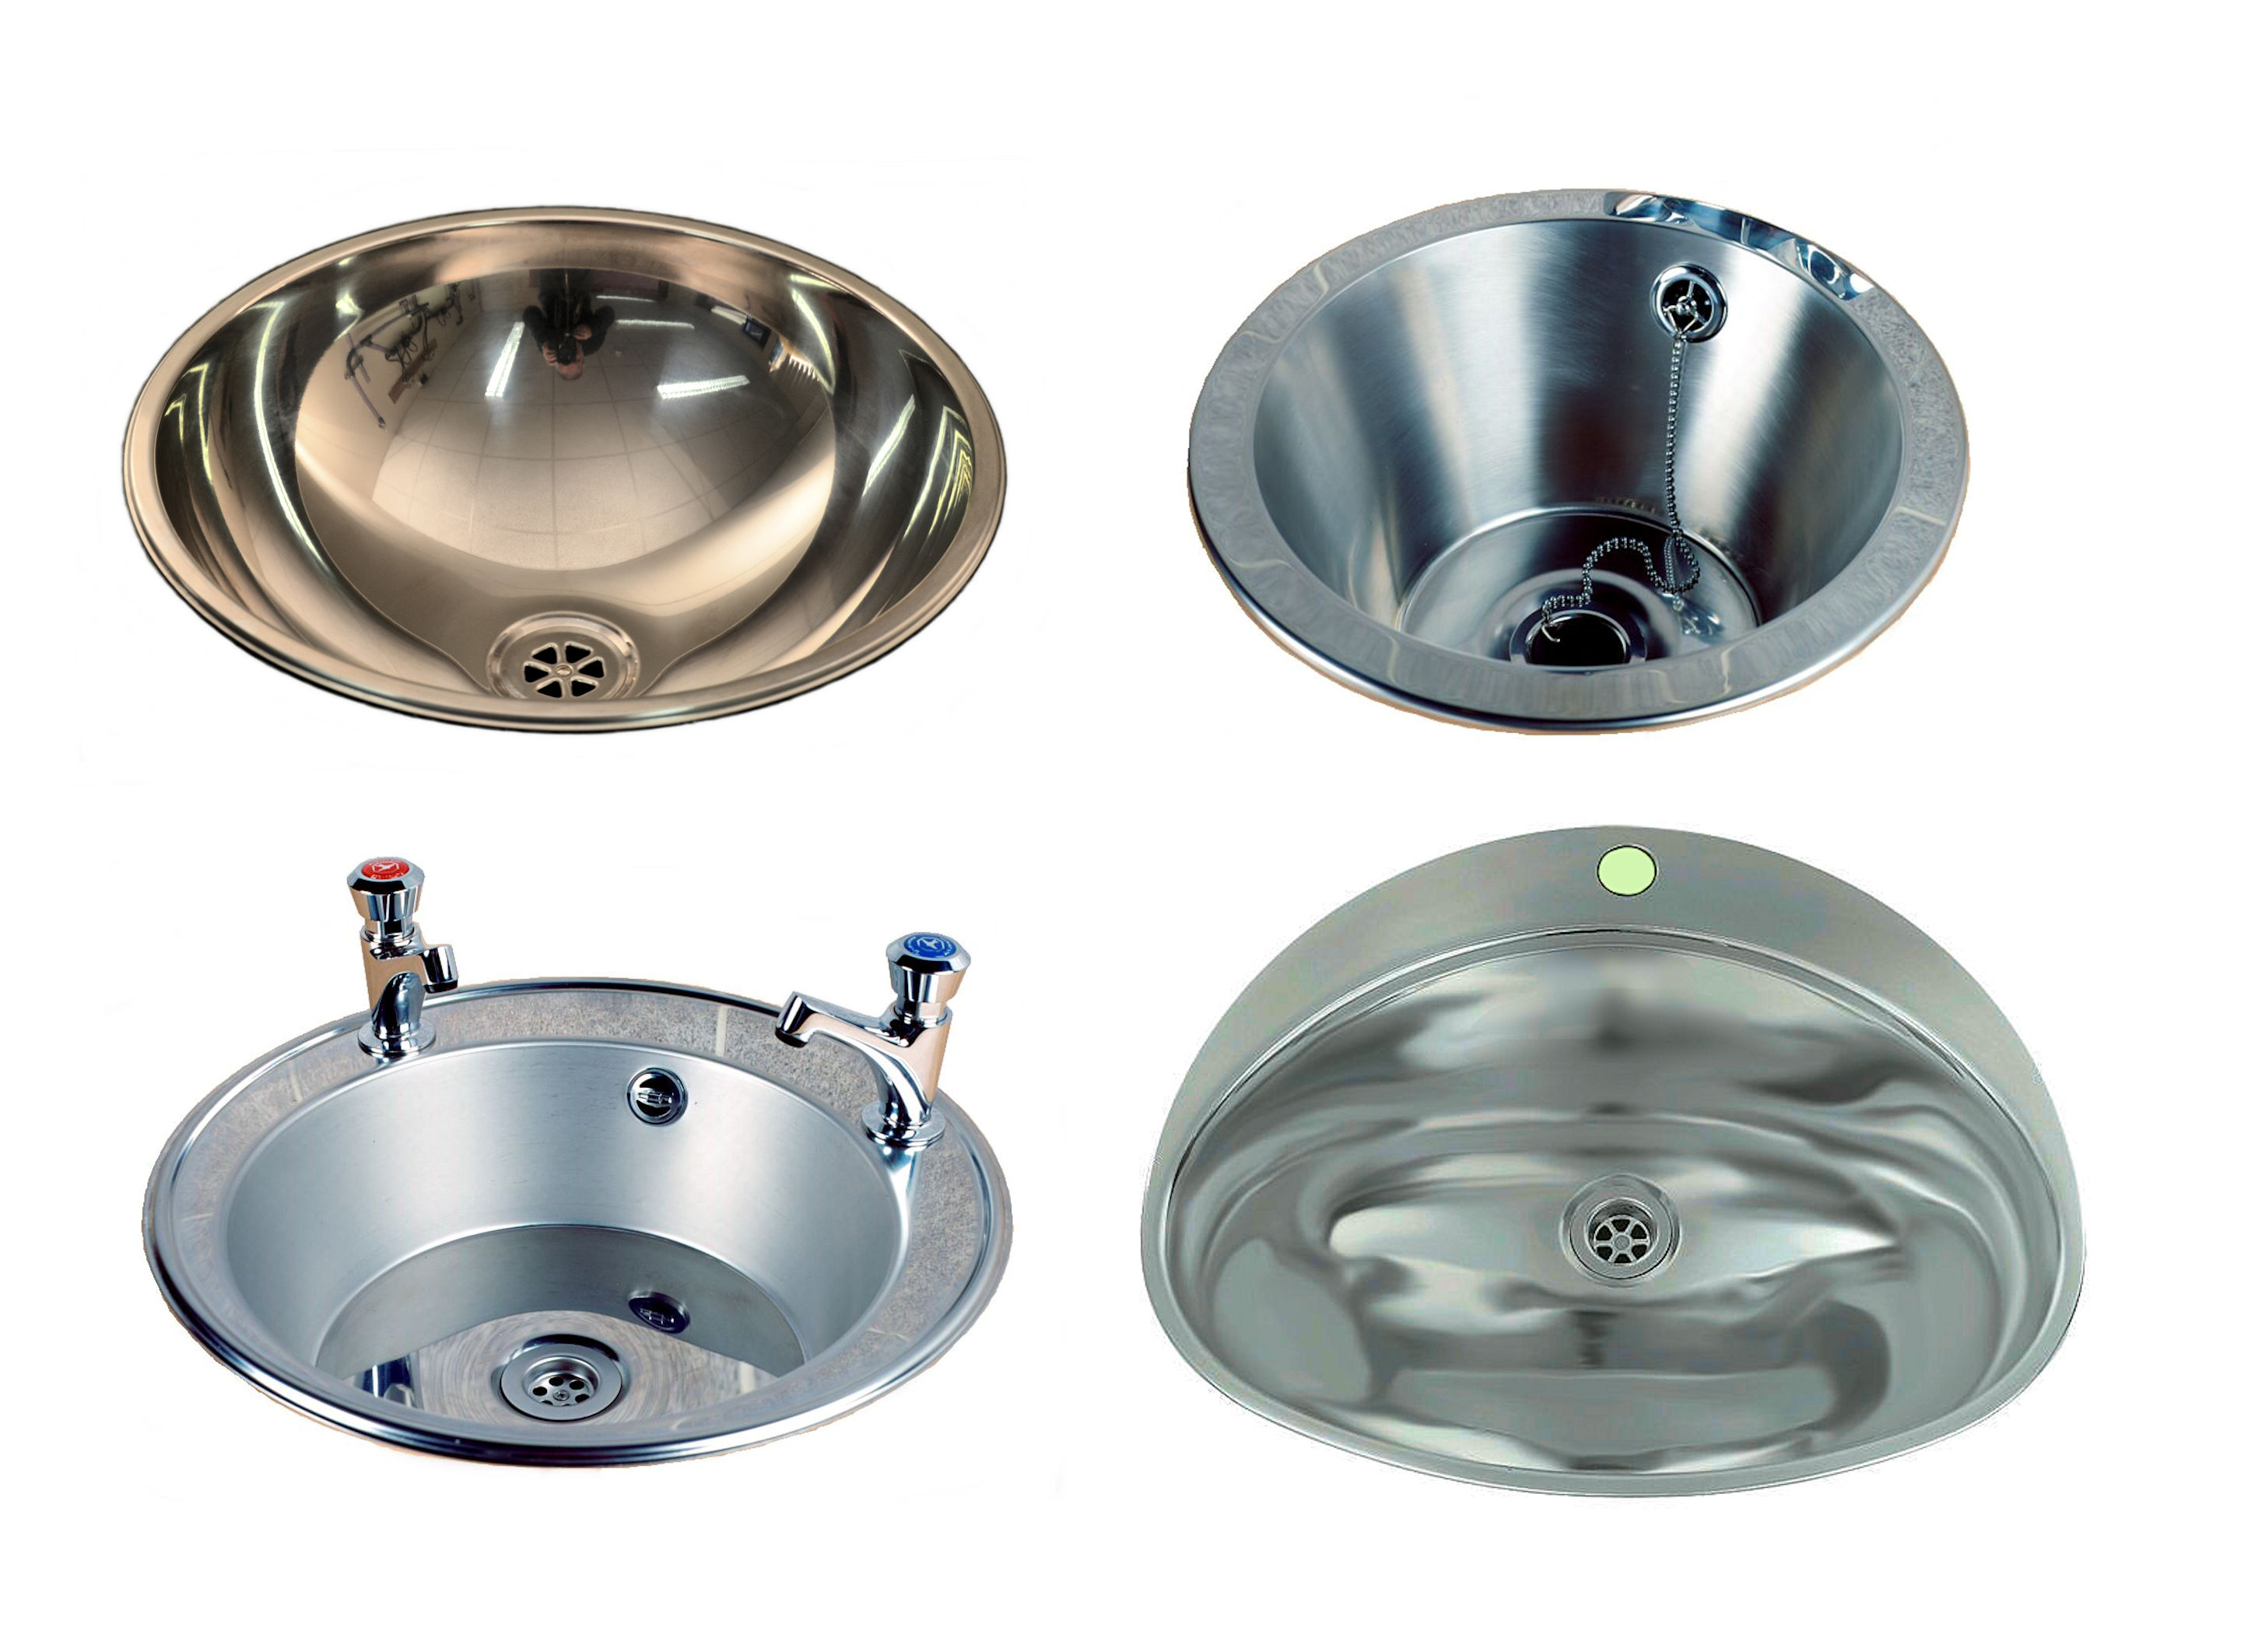 Inset Wash Basins image